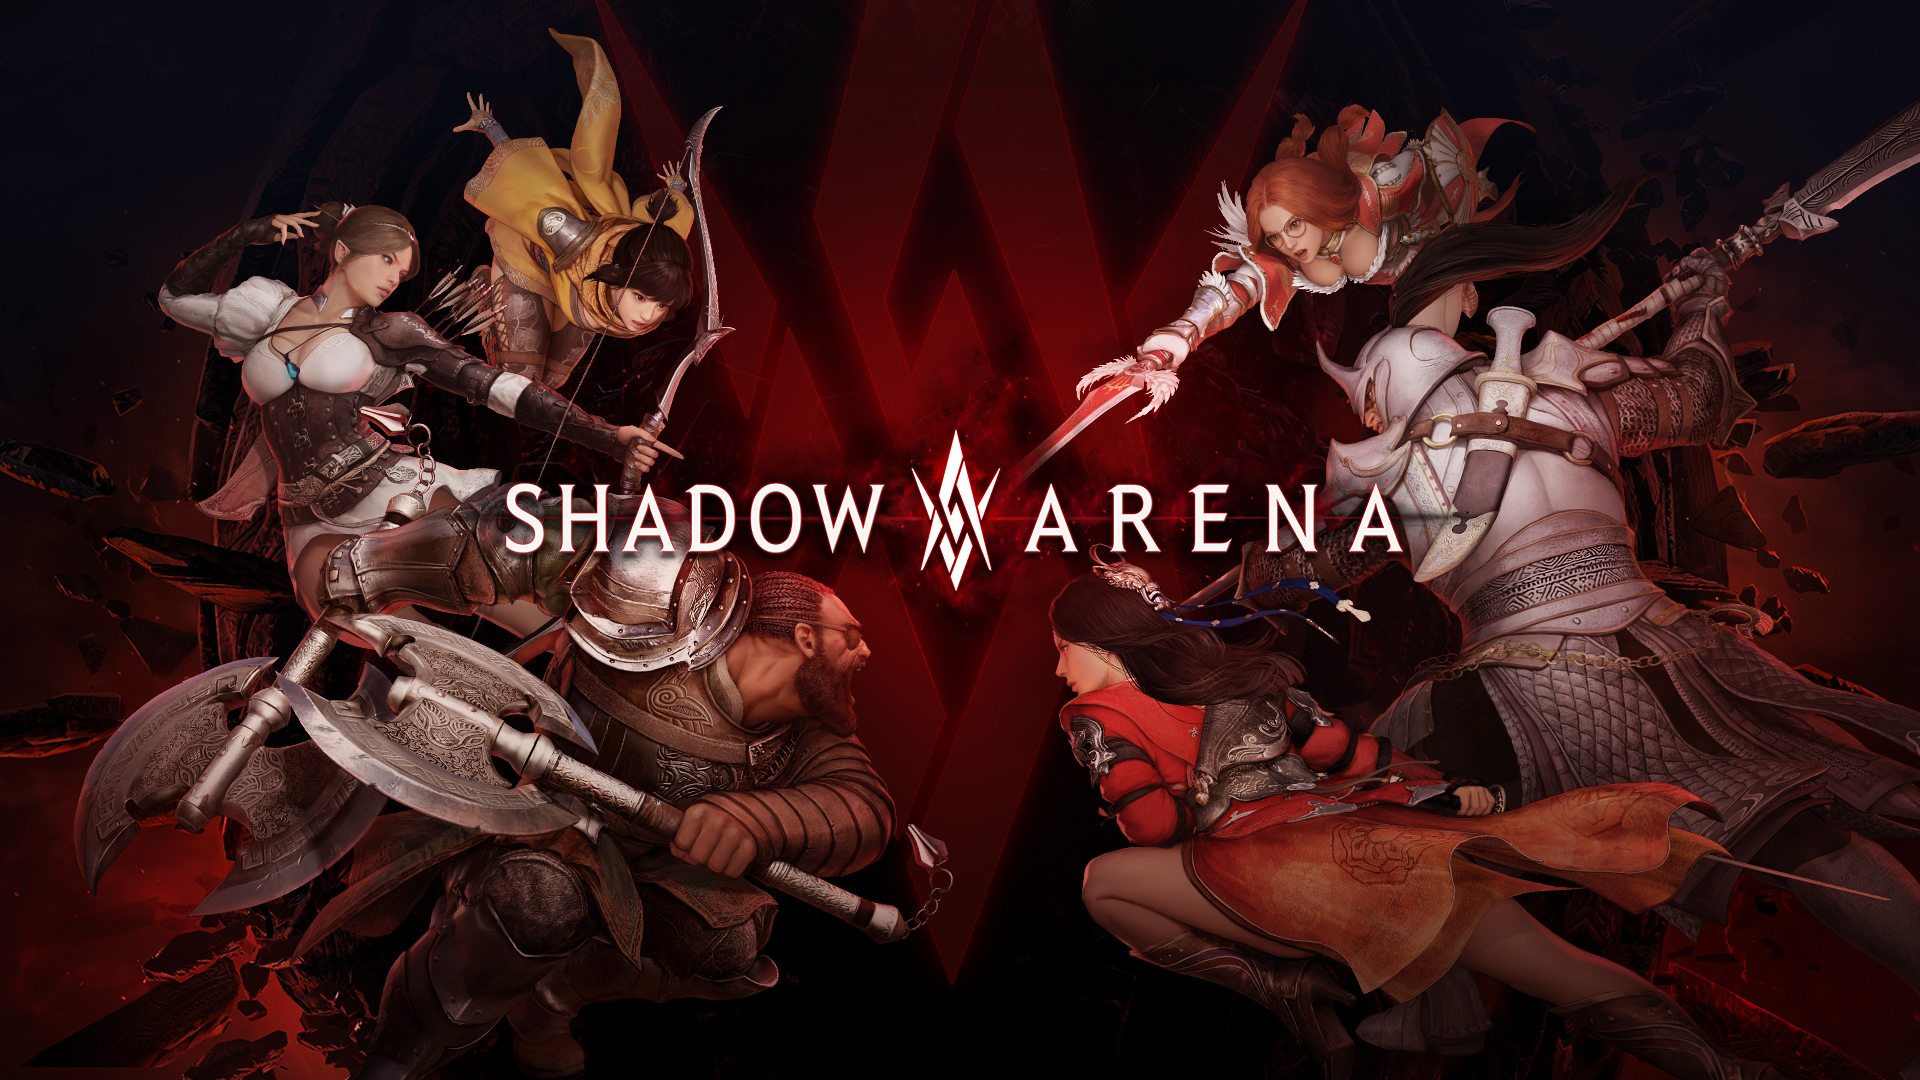 SHADOW ARENA 2